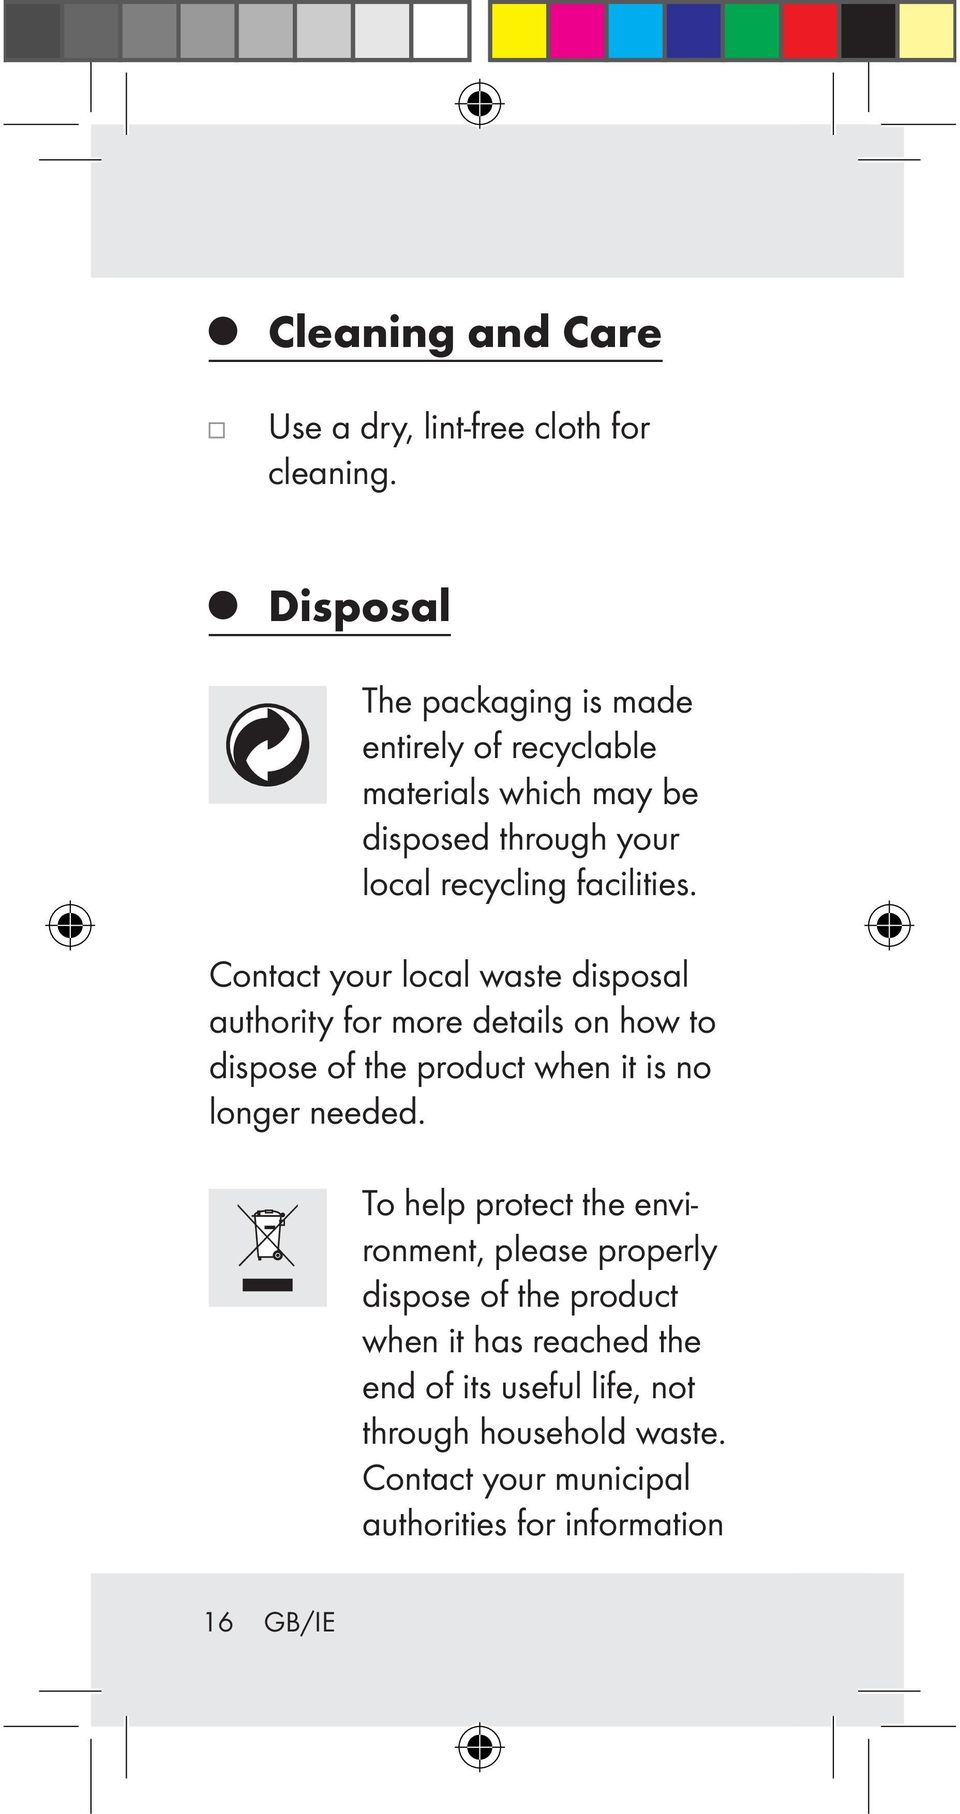 Contact your local waste disposal authority for more details on how to dispose of the product when it is no longer needed.